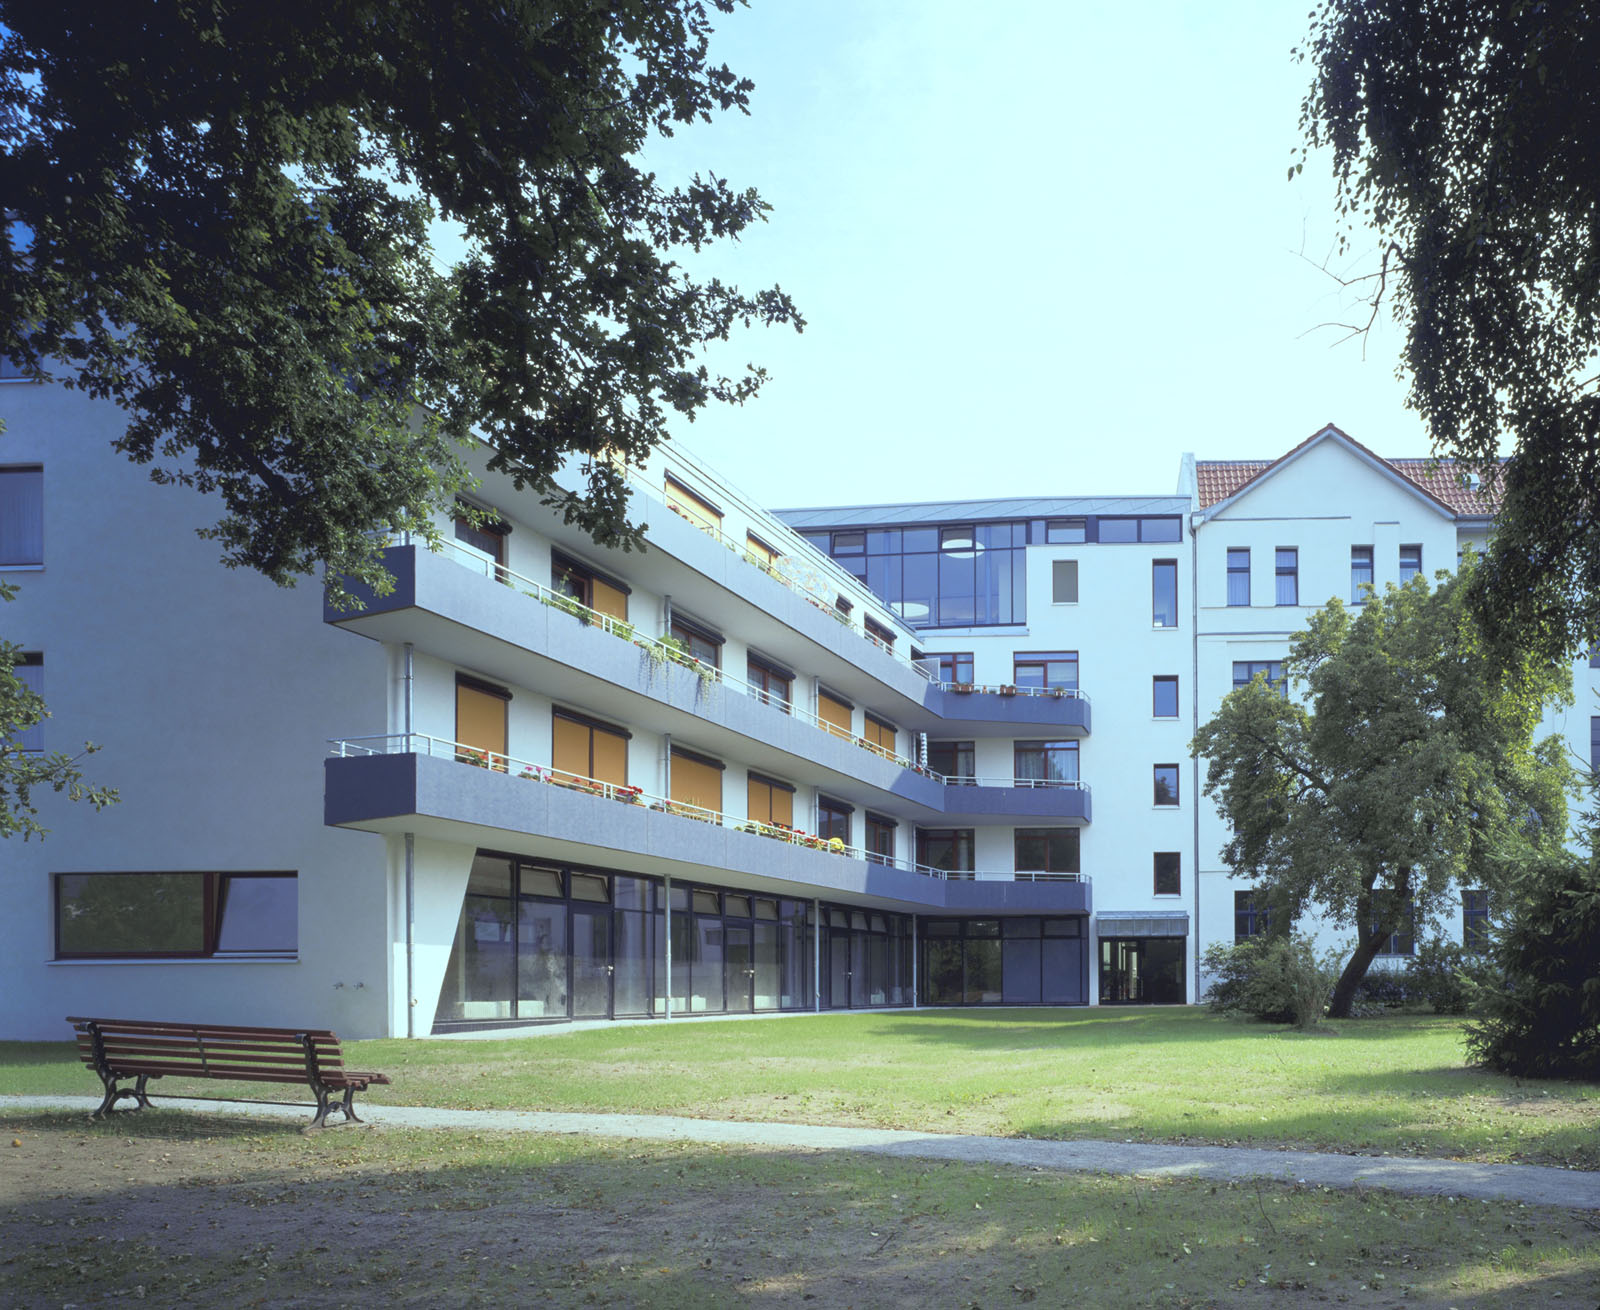 Seniorenzentrum 3, Berlin-Pankow